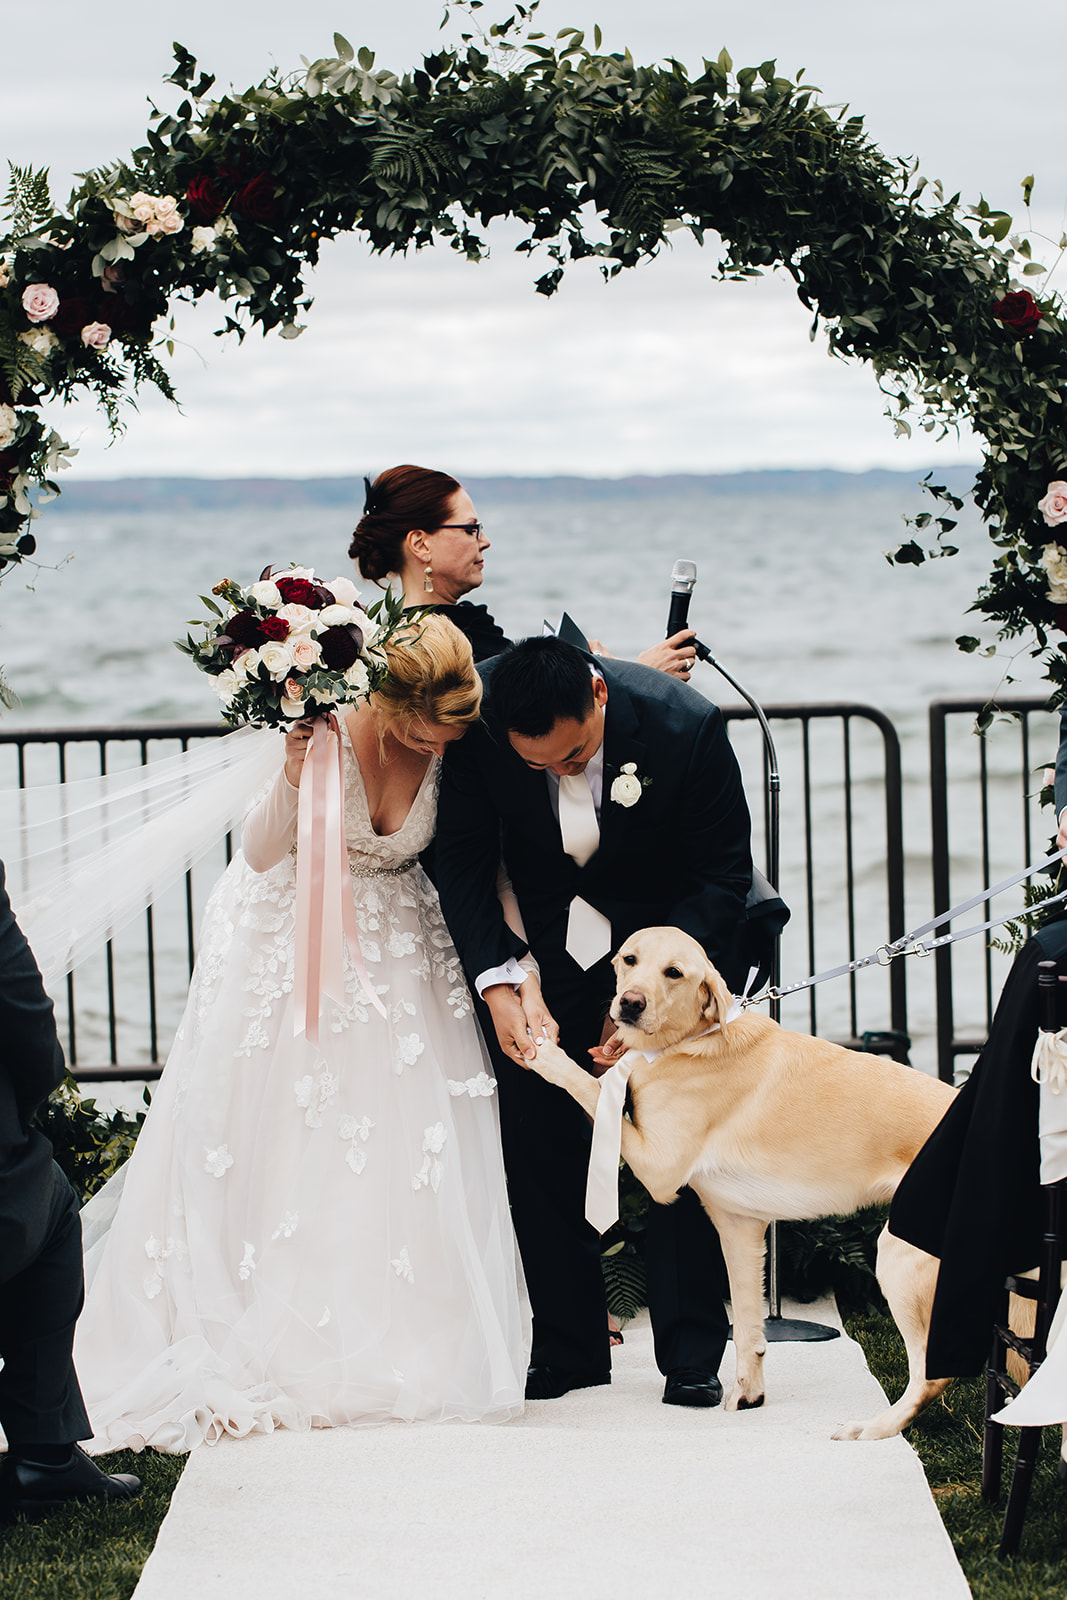 Bride and groom smiling at their dog at alter